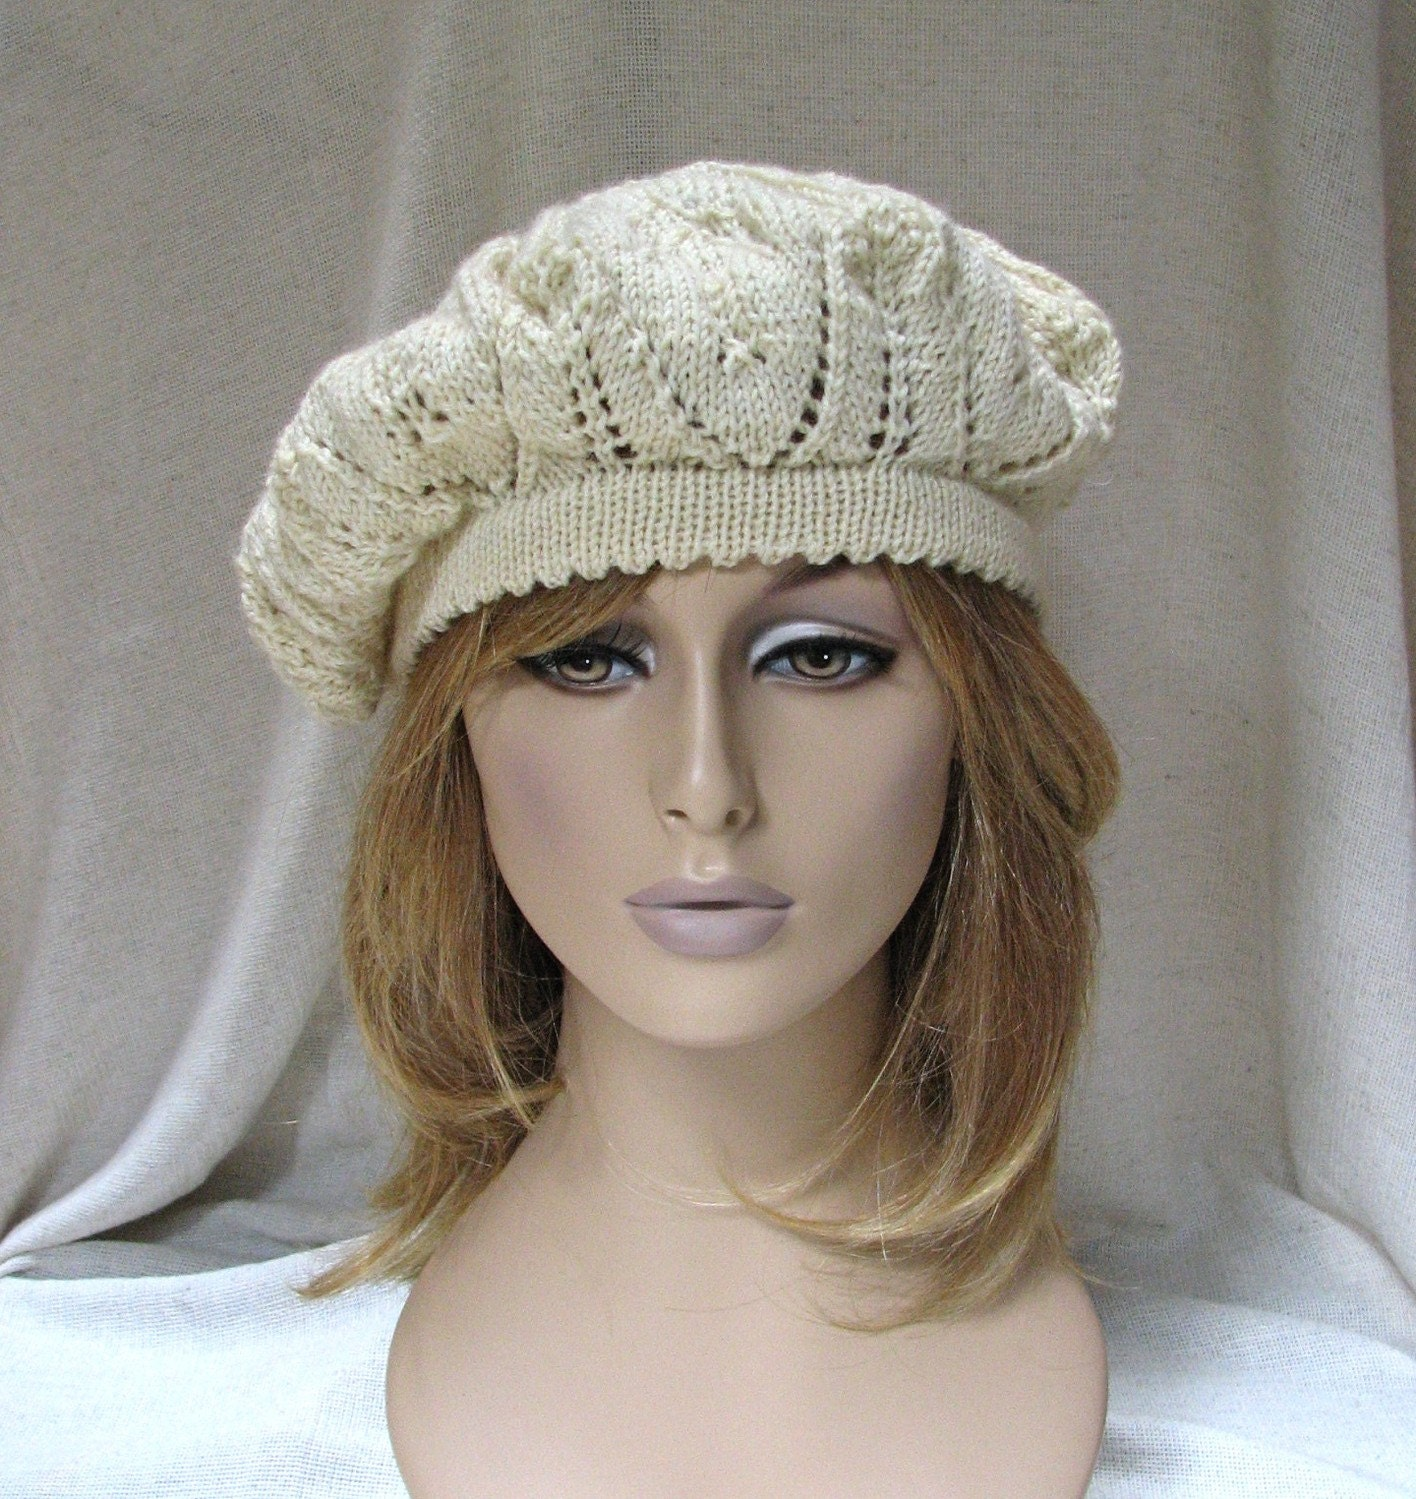 Knitting Patterns For Berets And Hats : BERET HAT PATTERNS - FREE PATTERNS